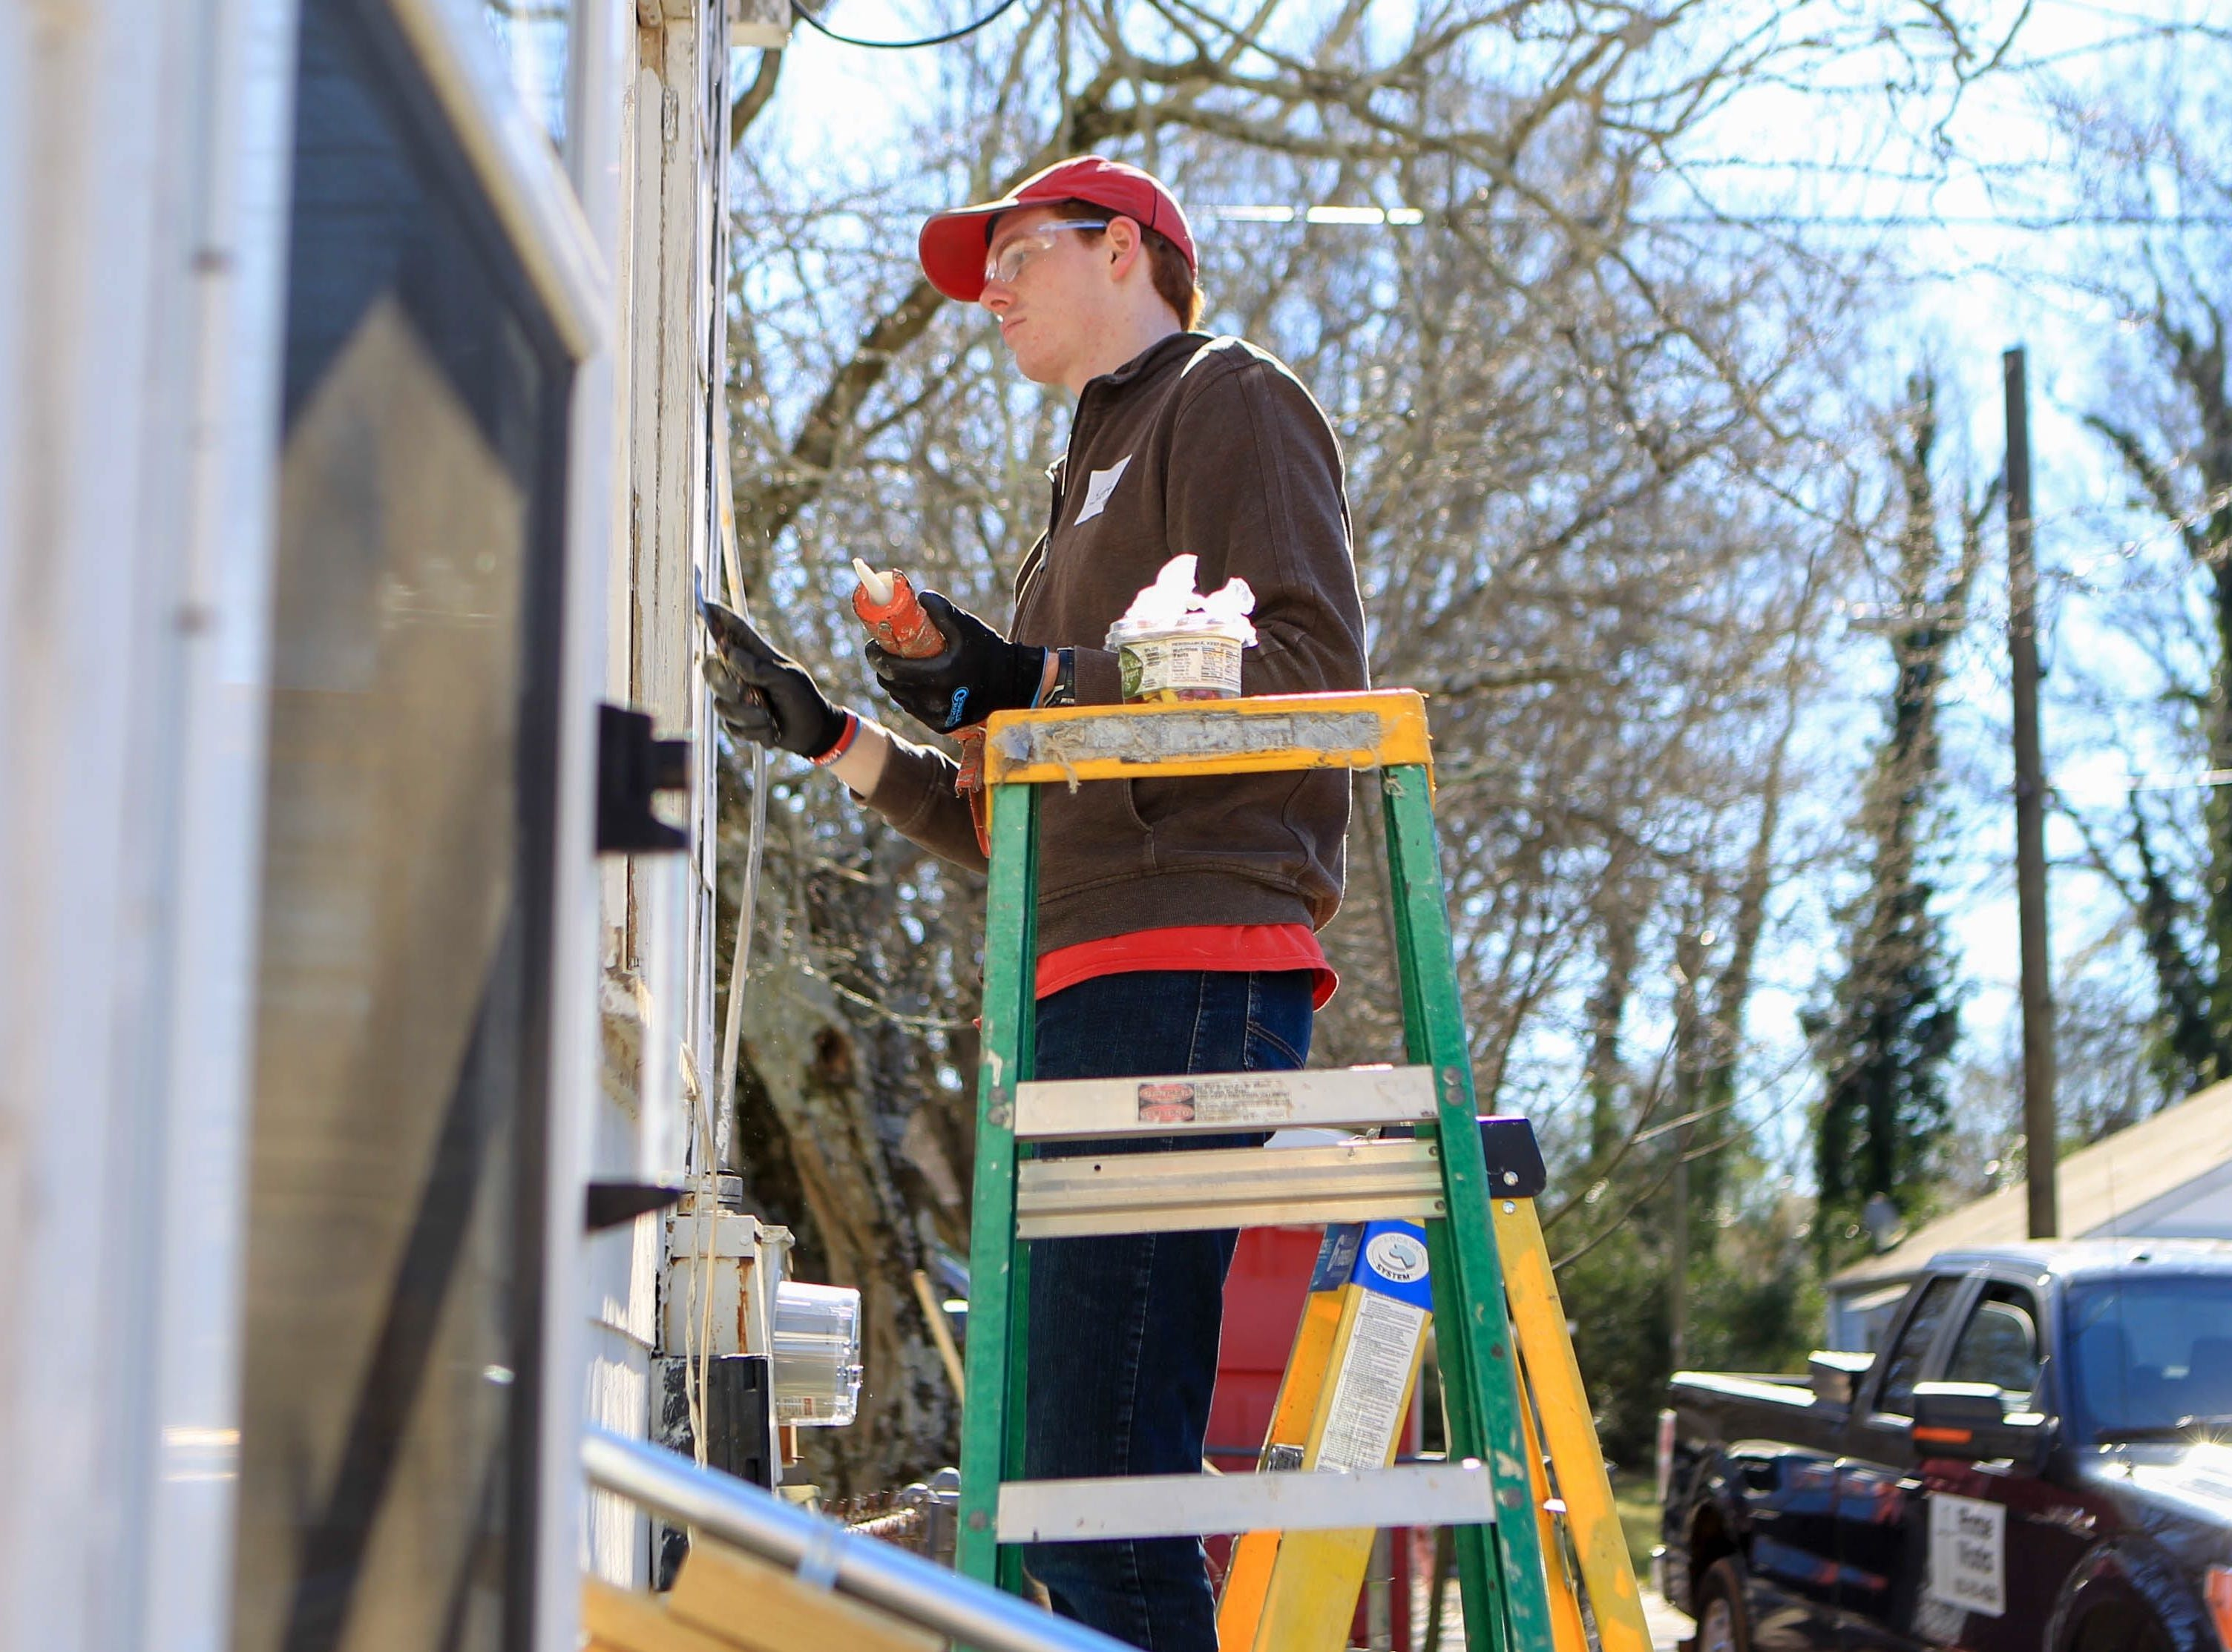 Bob Jones University's Scott Fichter, a junior, works on a home on Durham Street in Greenville on Martin Luther King, Jr. Day Monday, Jan. 21, 2019.